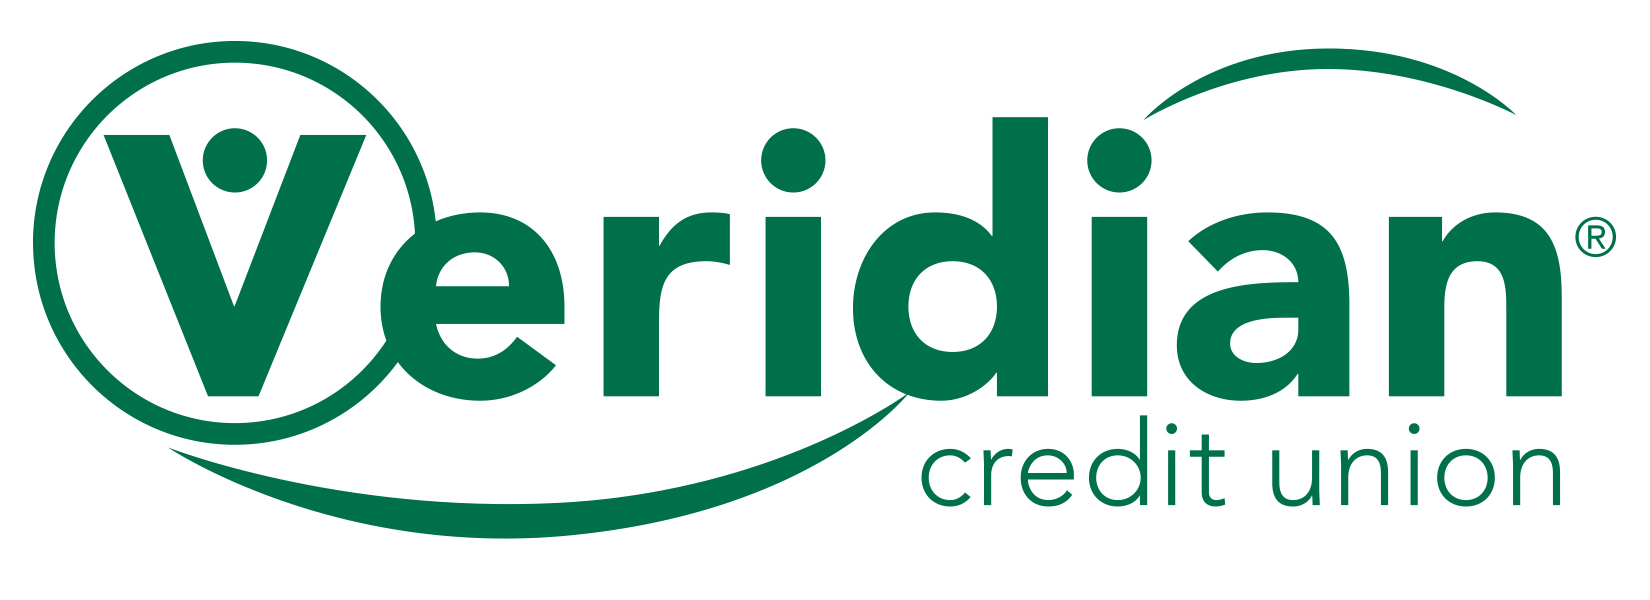 Veridian Credit Union Company Logo